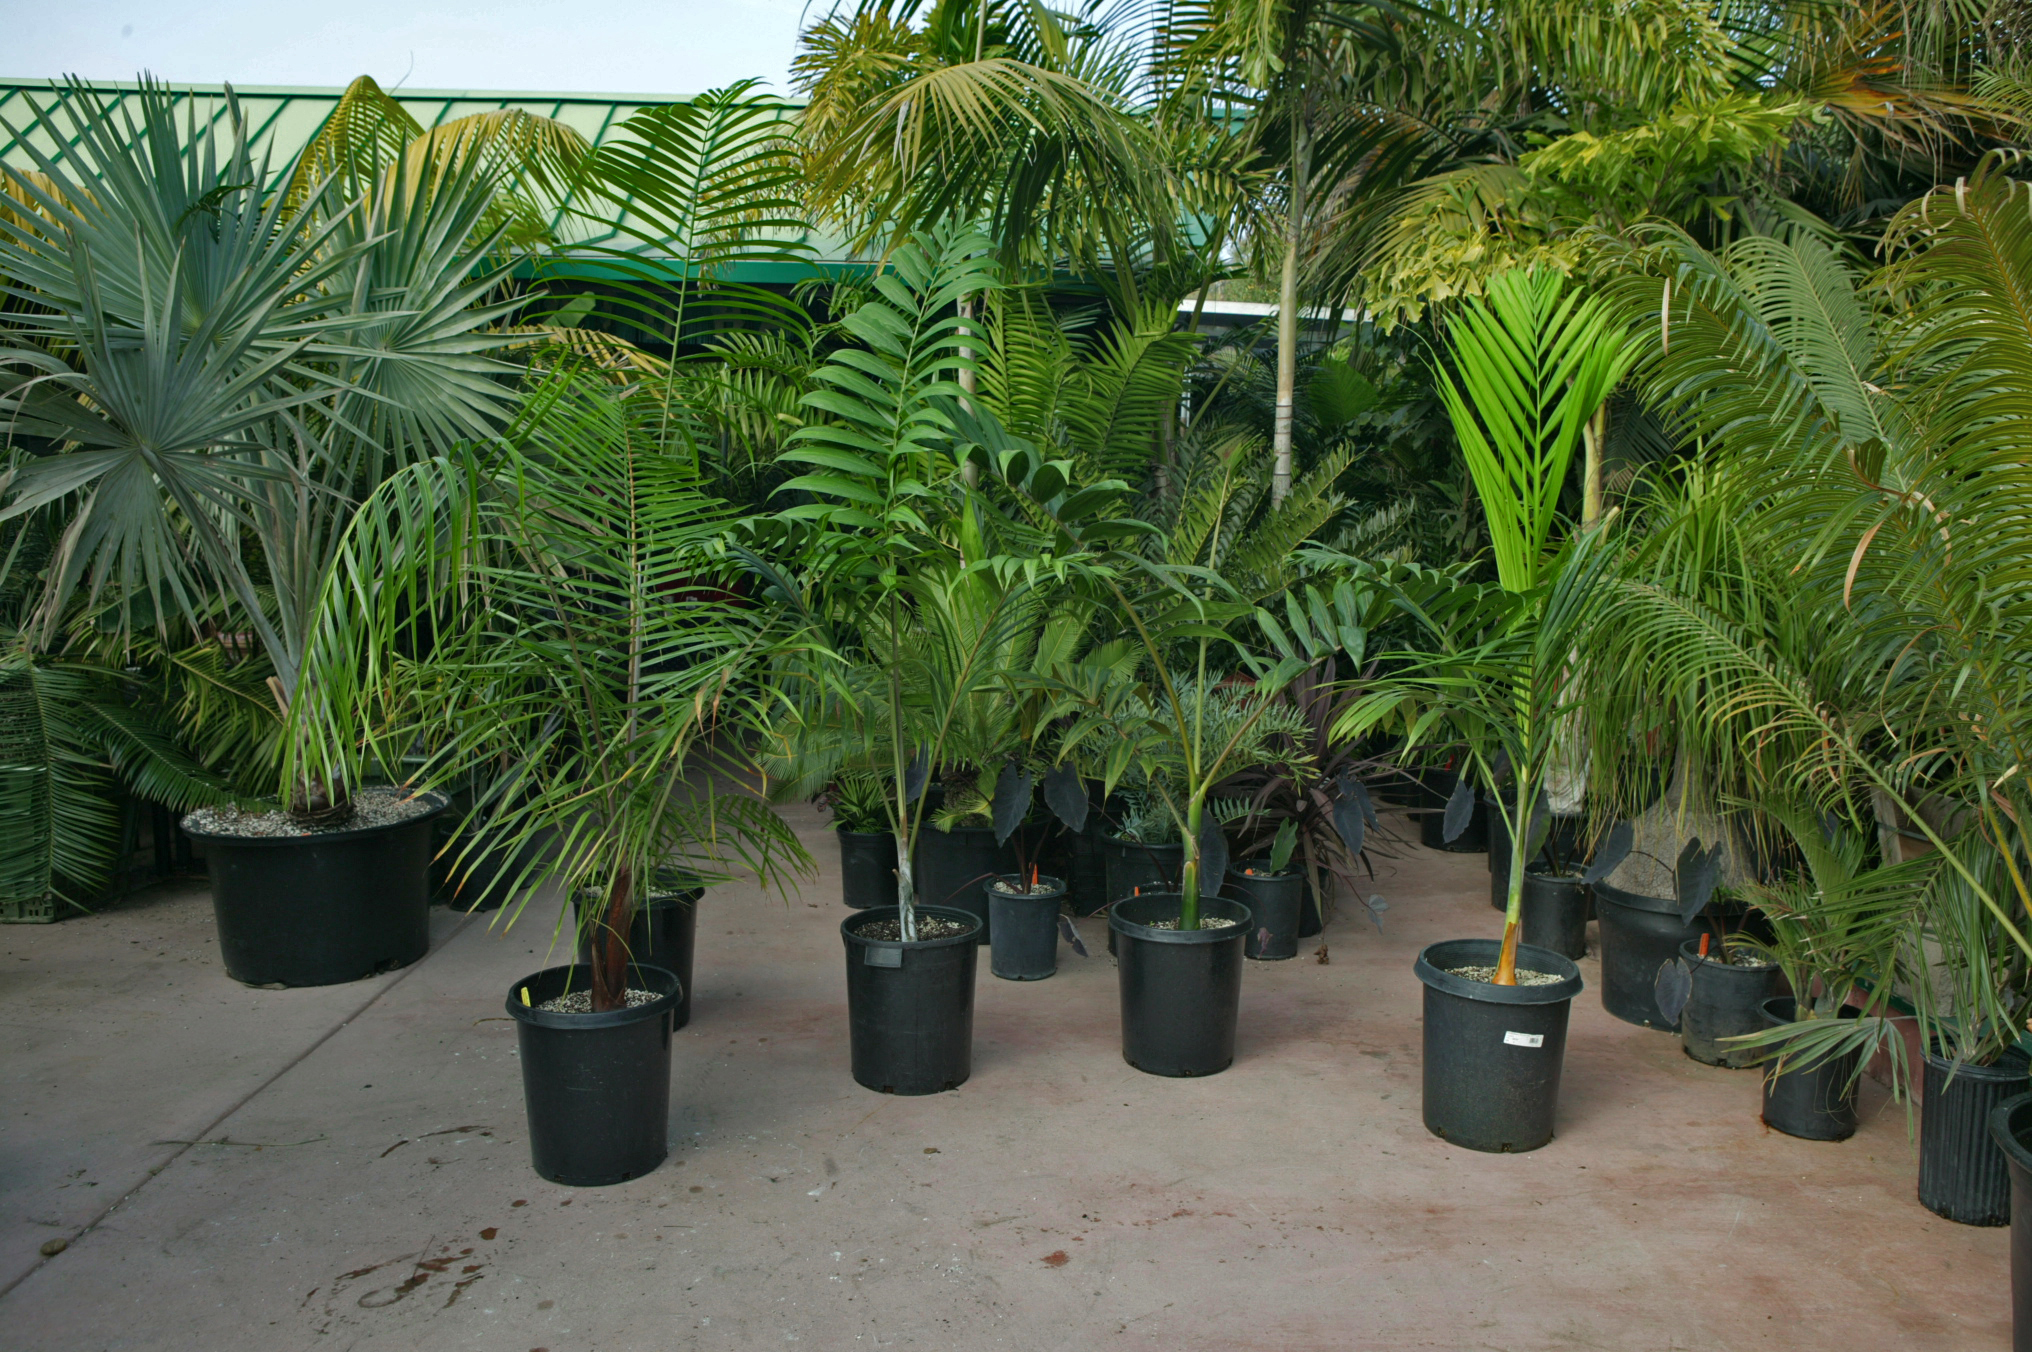 Tour of Jungle Music Palms, Cycads amp; Tropical Plants